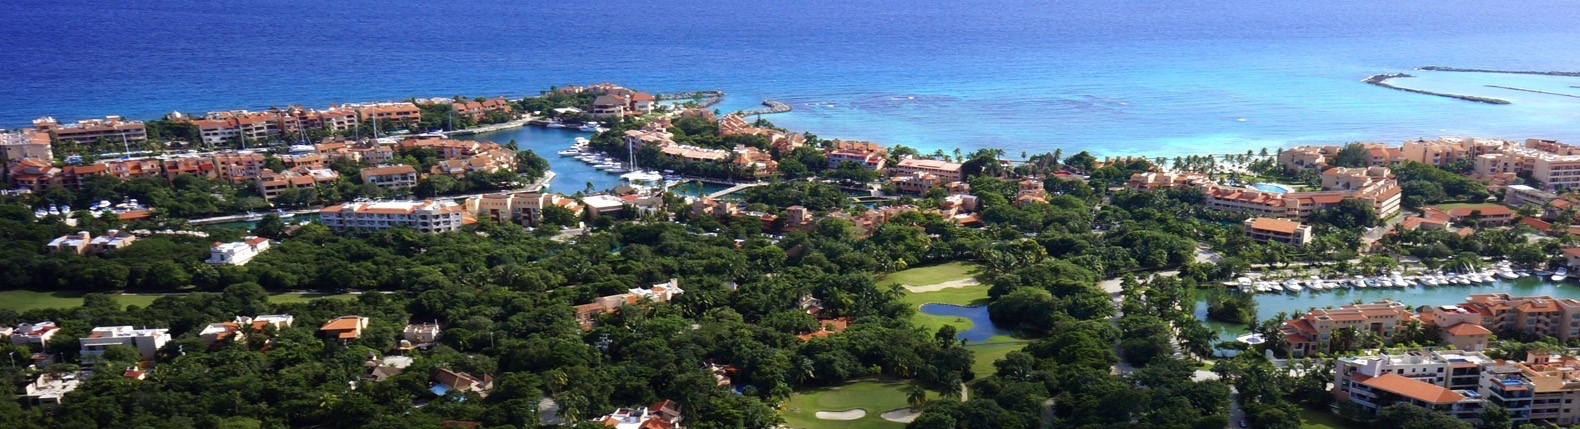 Puerto aventuras real estate